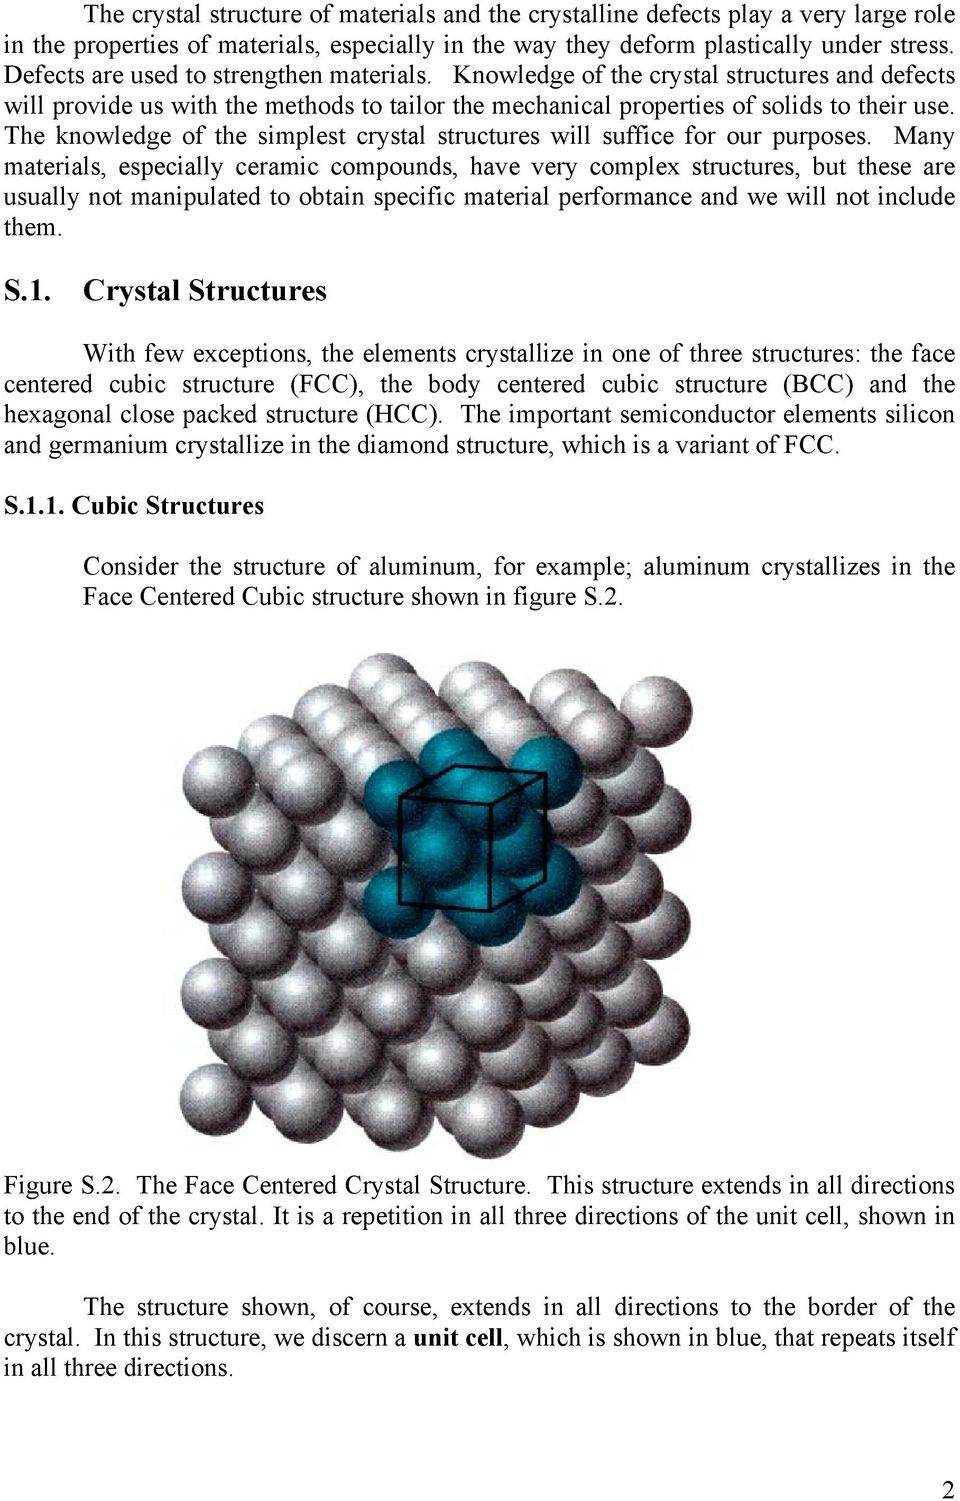 The knowledge of the simplest crystal structures will suffice for our purposes.